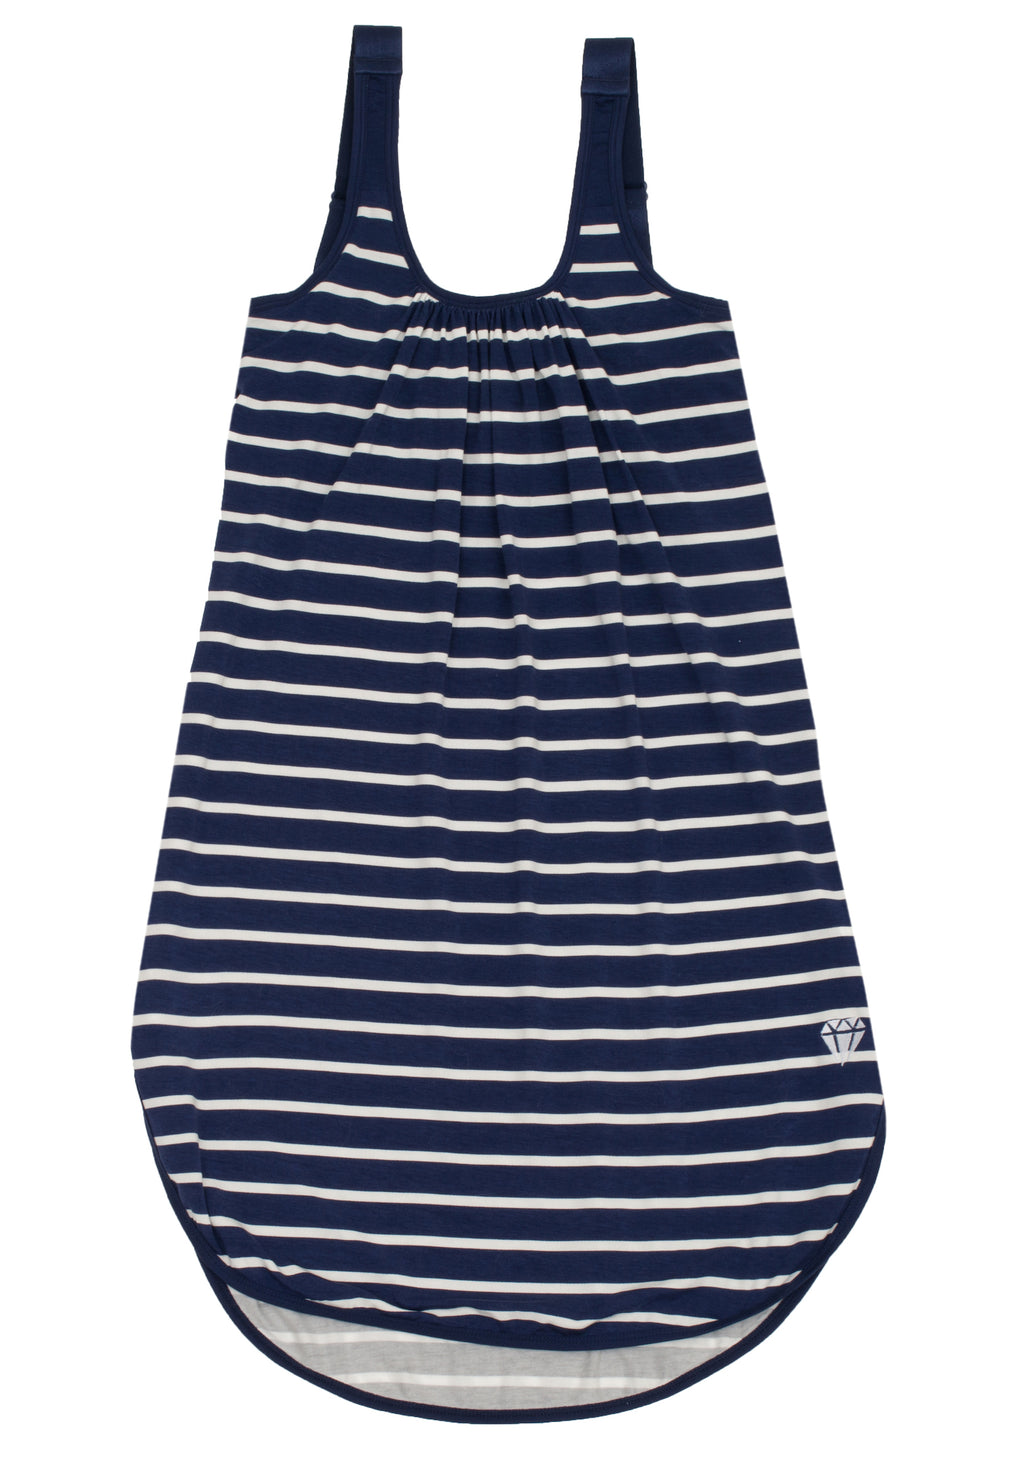 private holdings navy and white striped gown